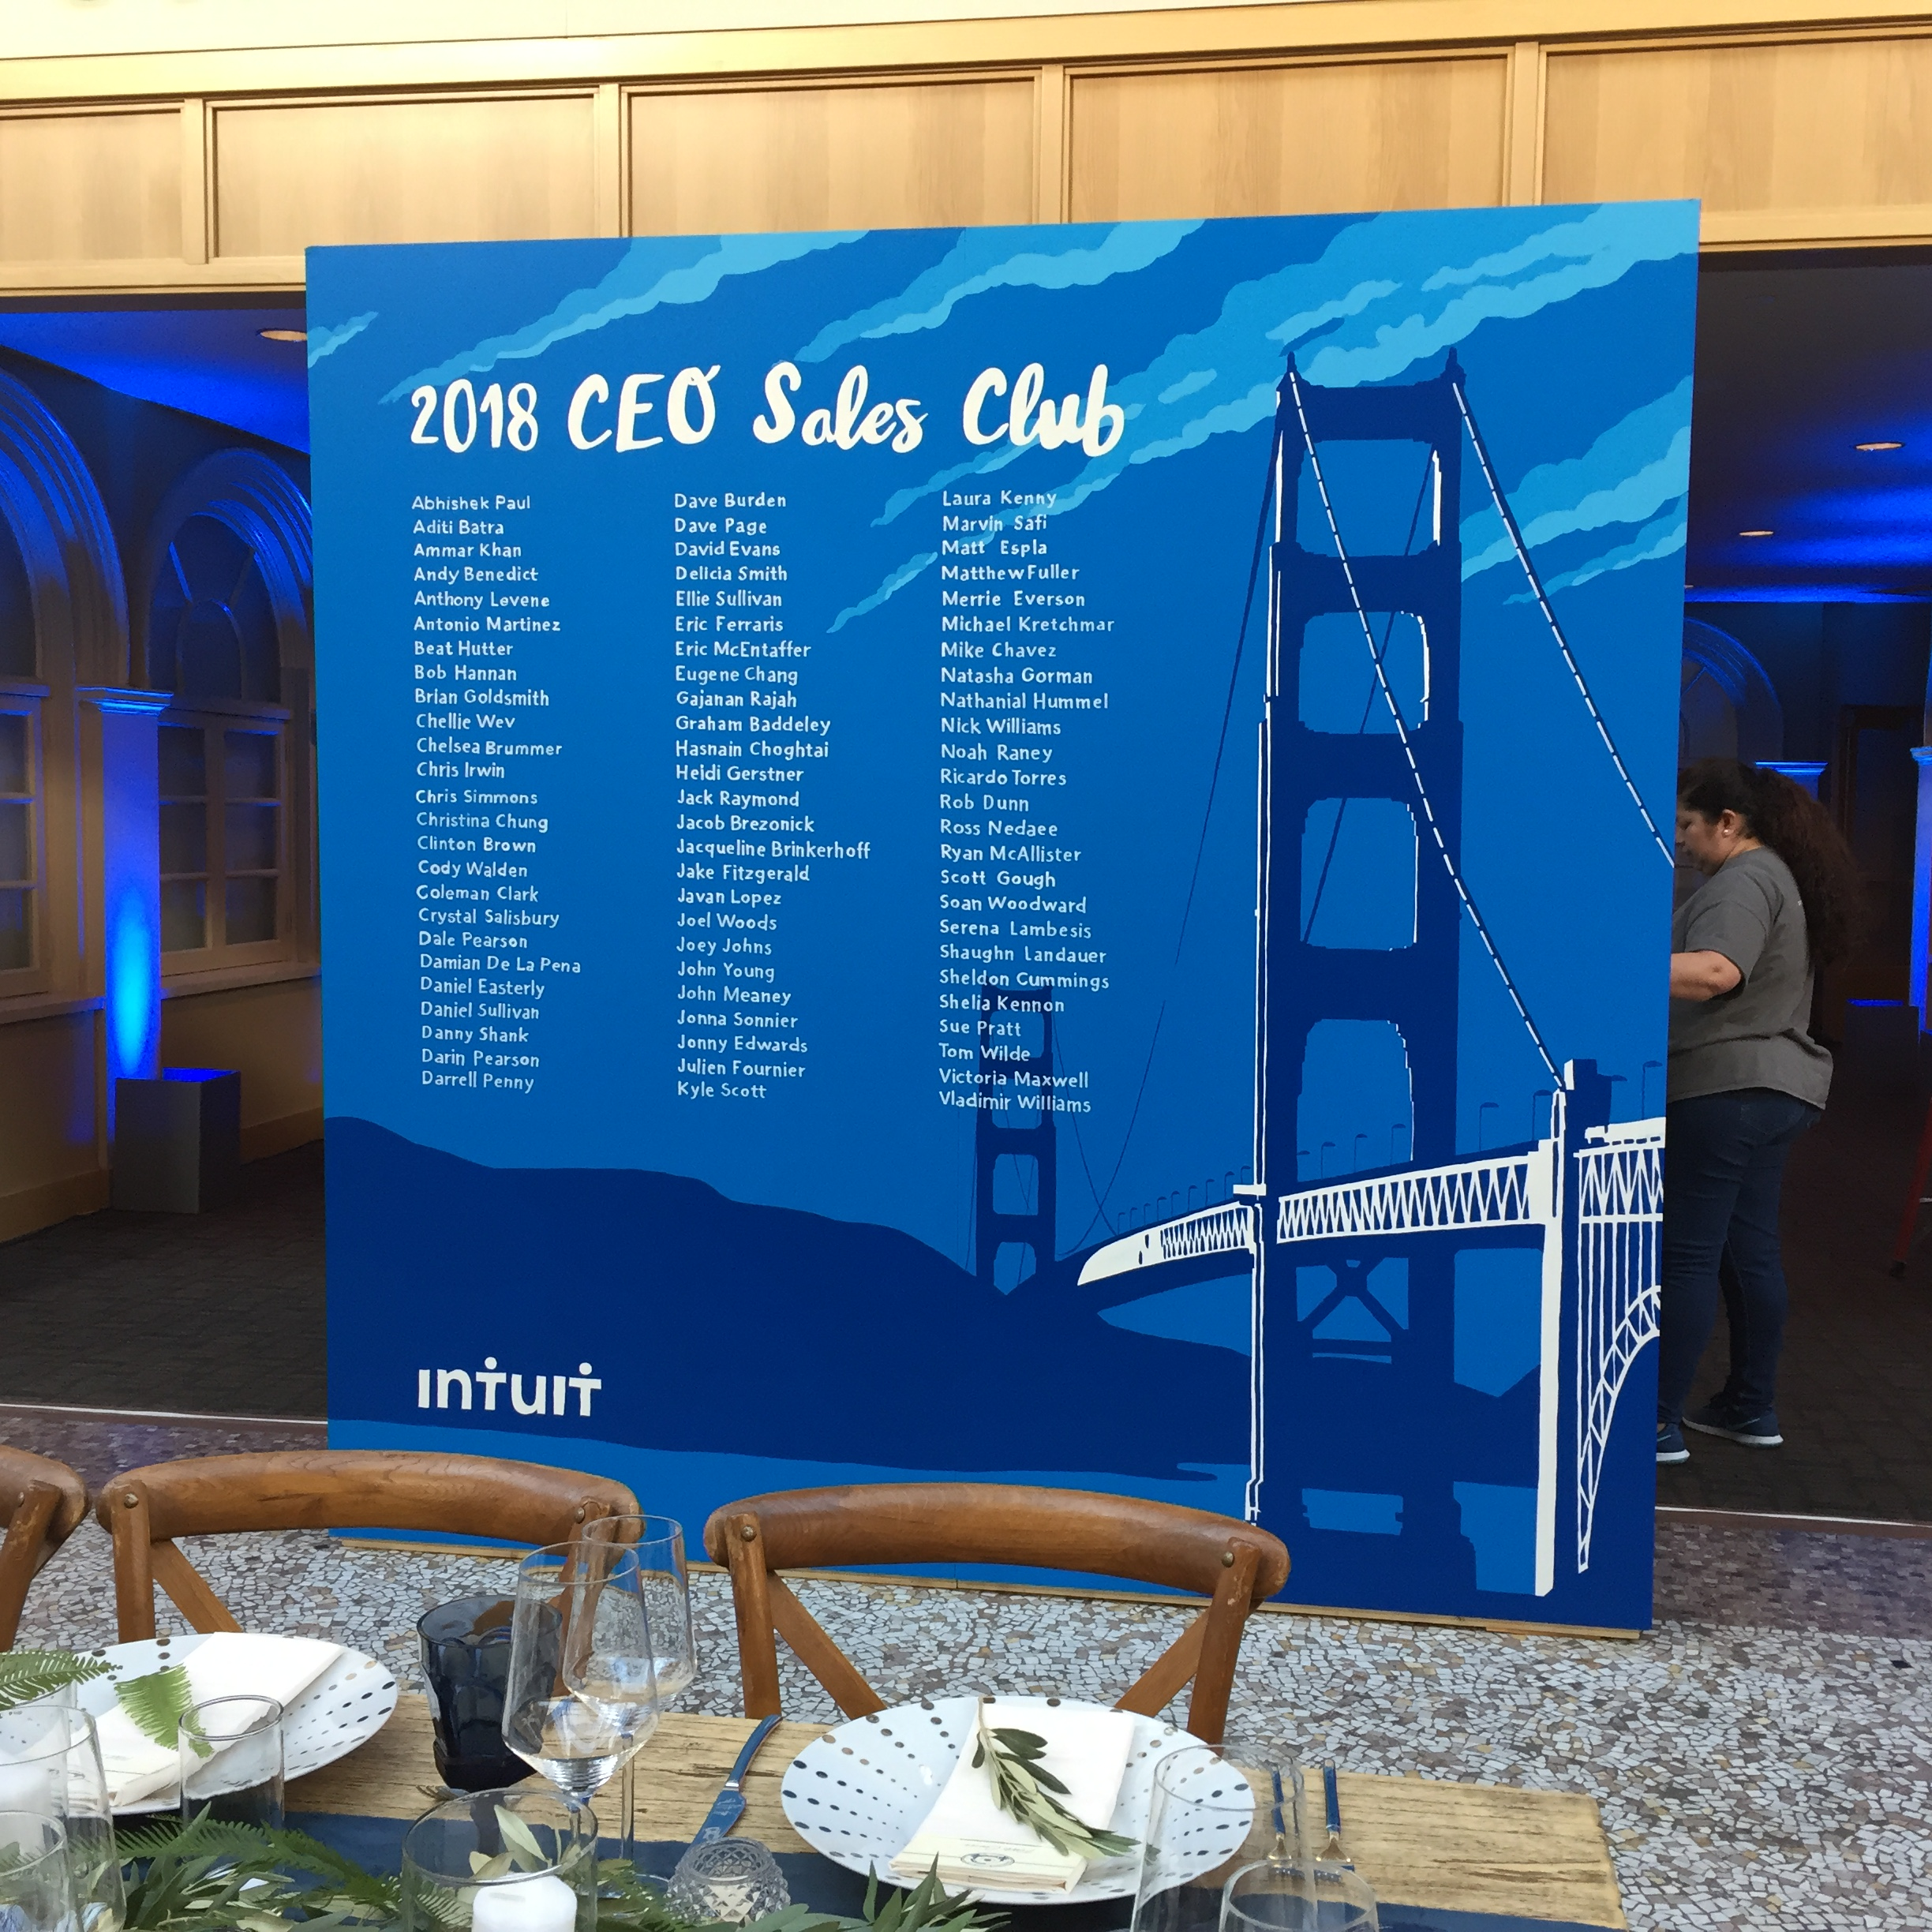 Event-mural-brand-activation-san-francisco-intuit-wall-and-wall-mural-company.jpeg